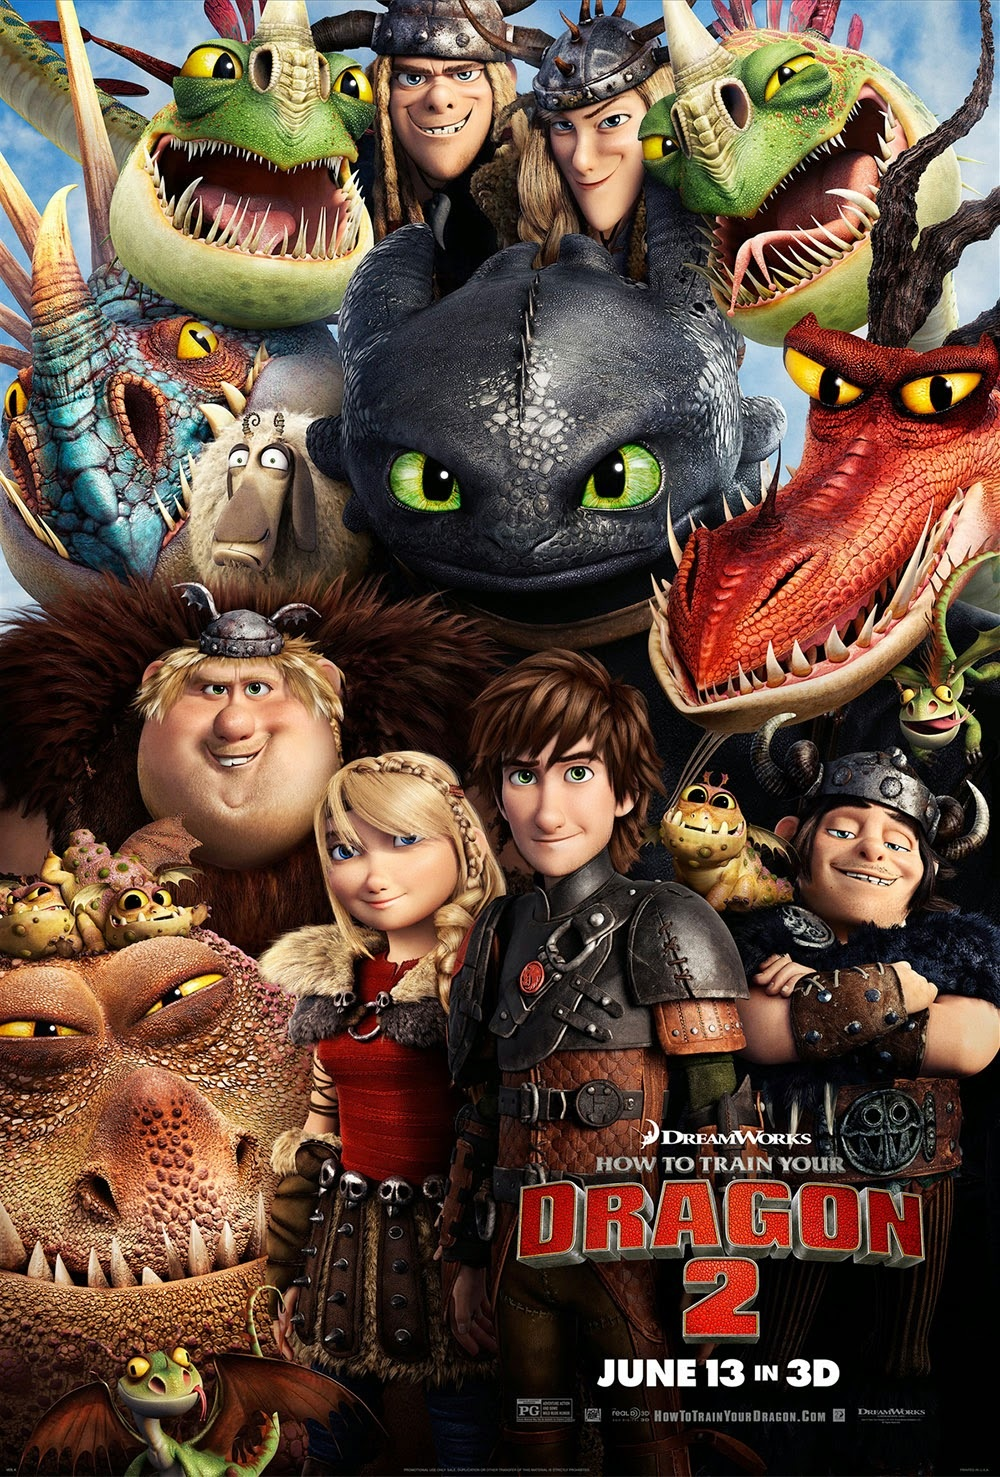 This is an image of Rare Pictures of Dragons From How to Train Your Dragon